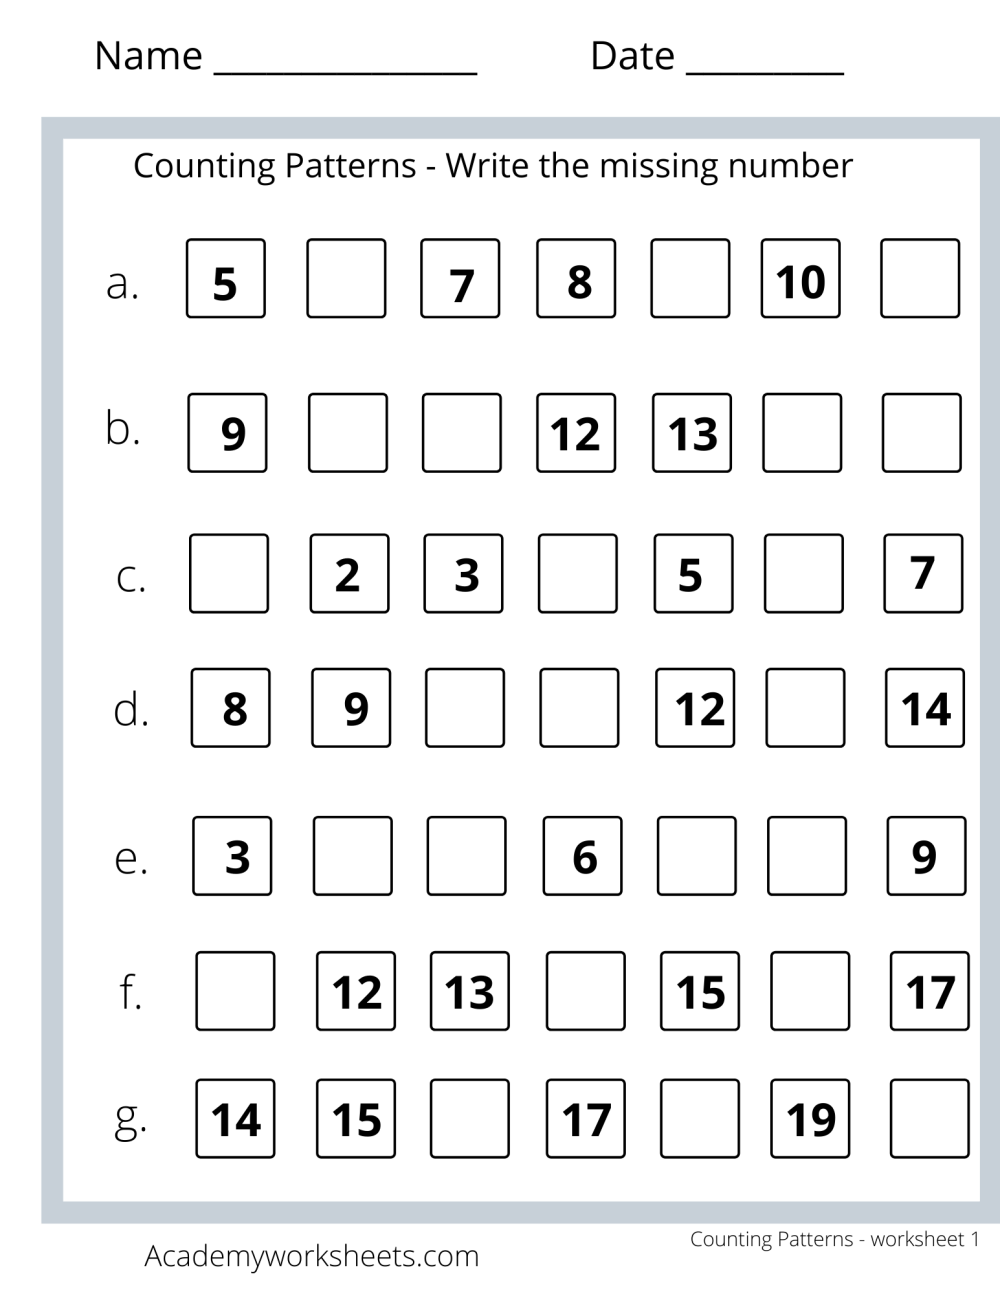 medium resolution of Counting Patterns Math Worksheets - Academy Worksheets